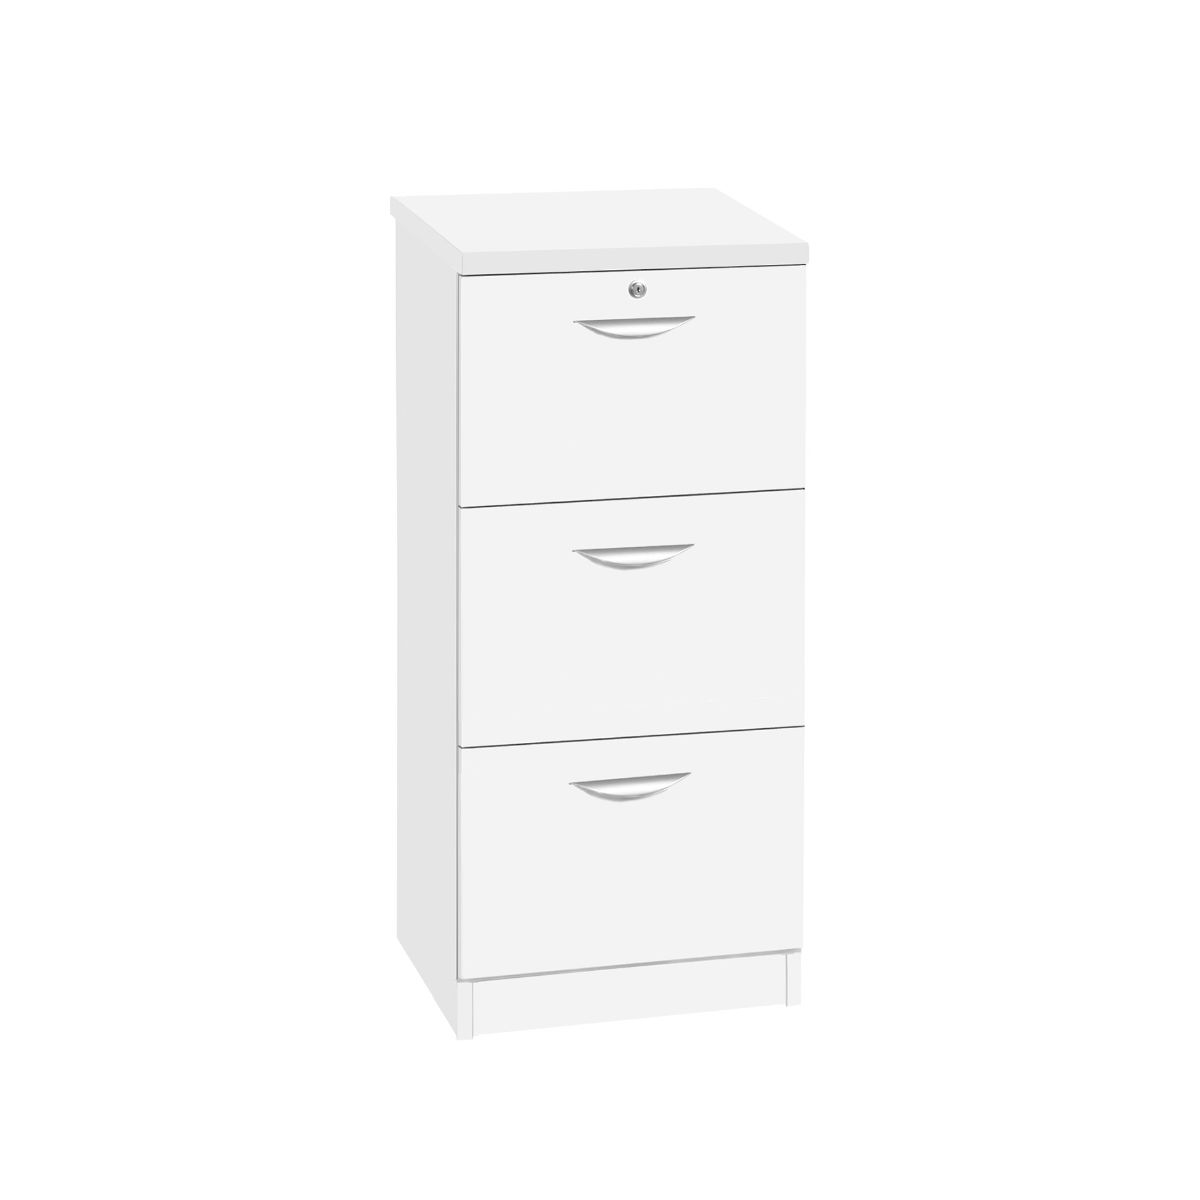 R White 3 Drawer Cabinet, White